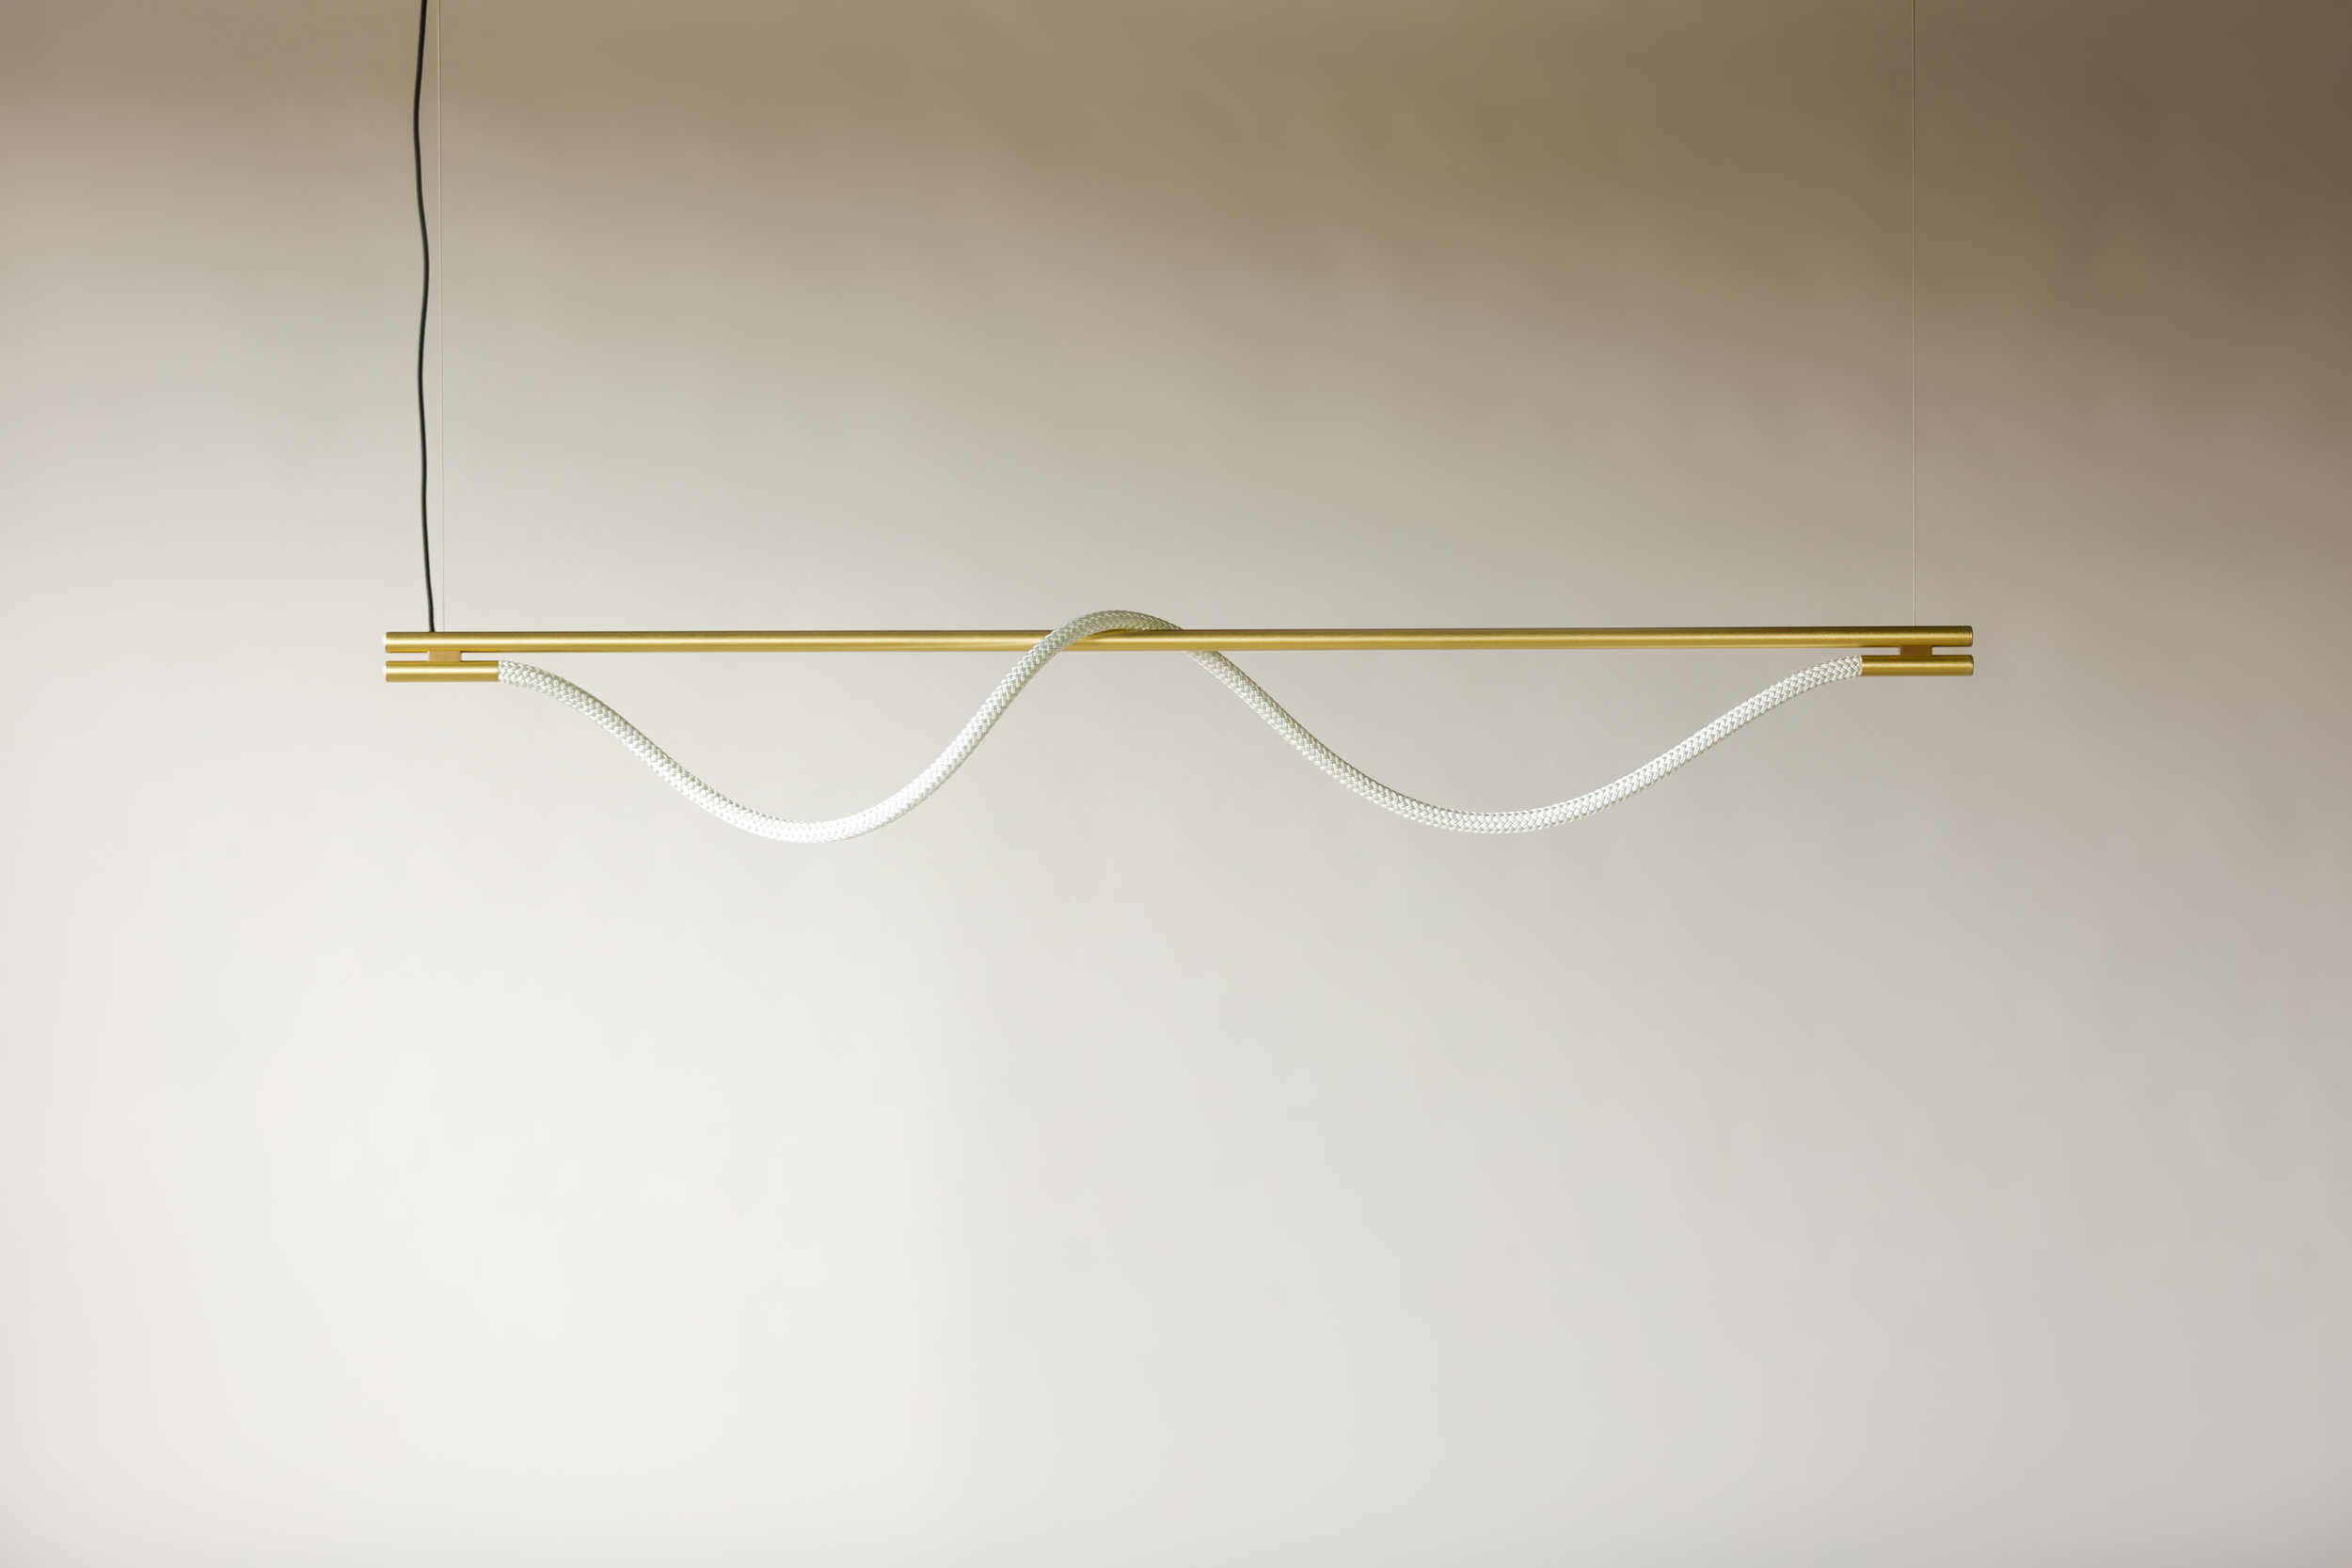 6' Surrey Suspension I - Cable  (pictured in Satin Brass / turned off)